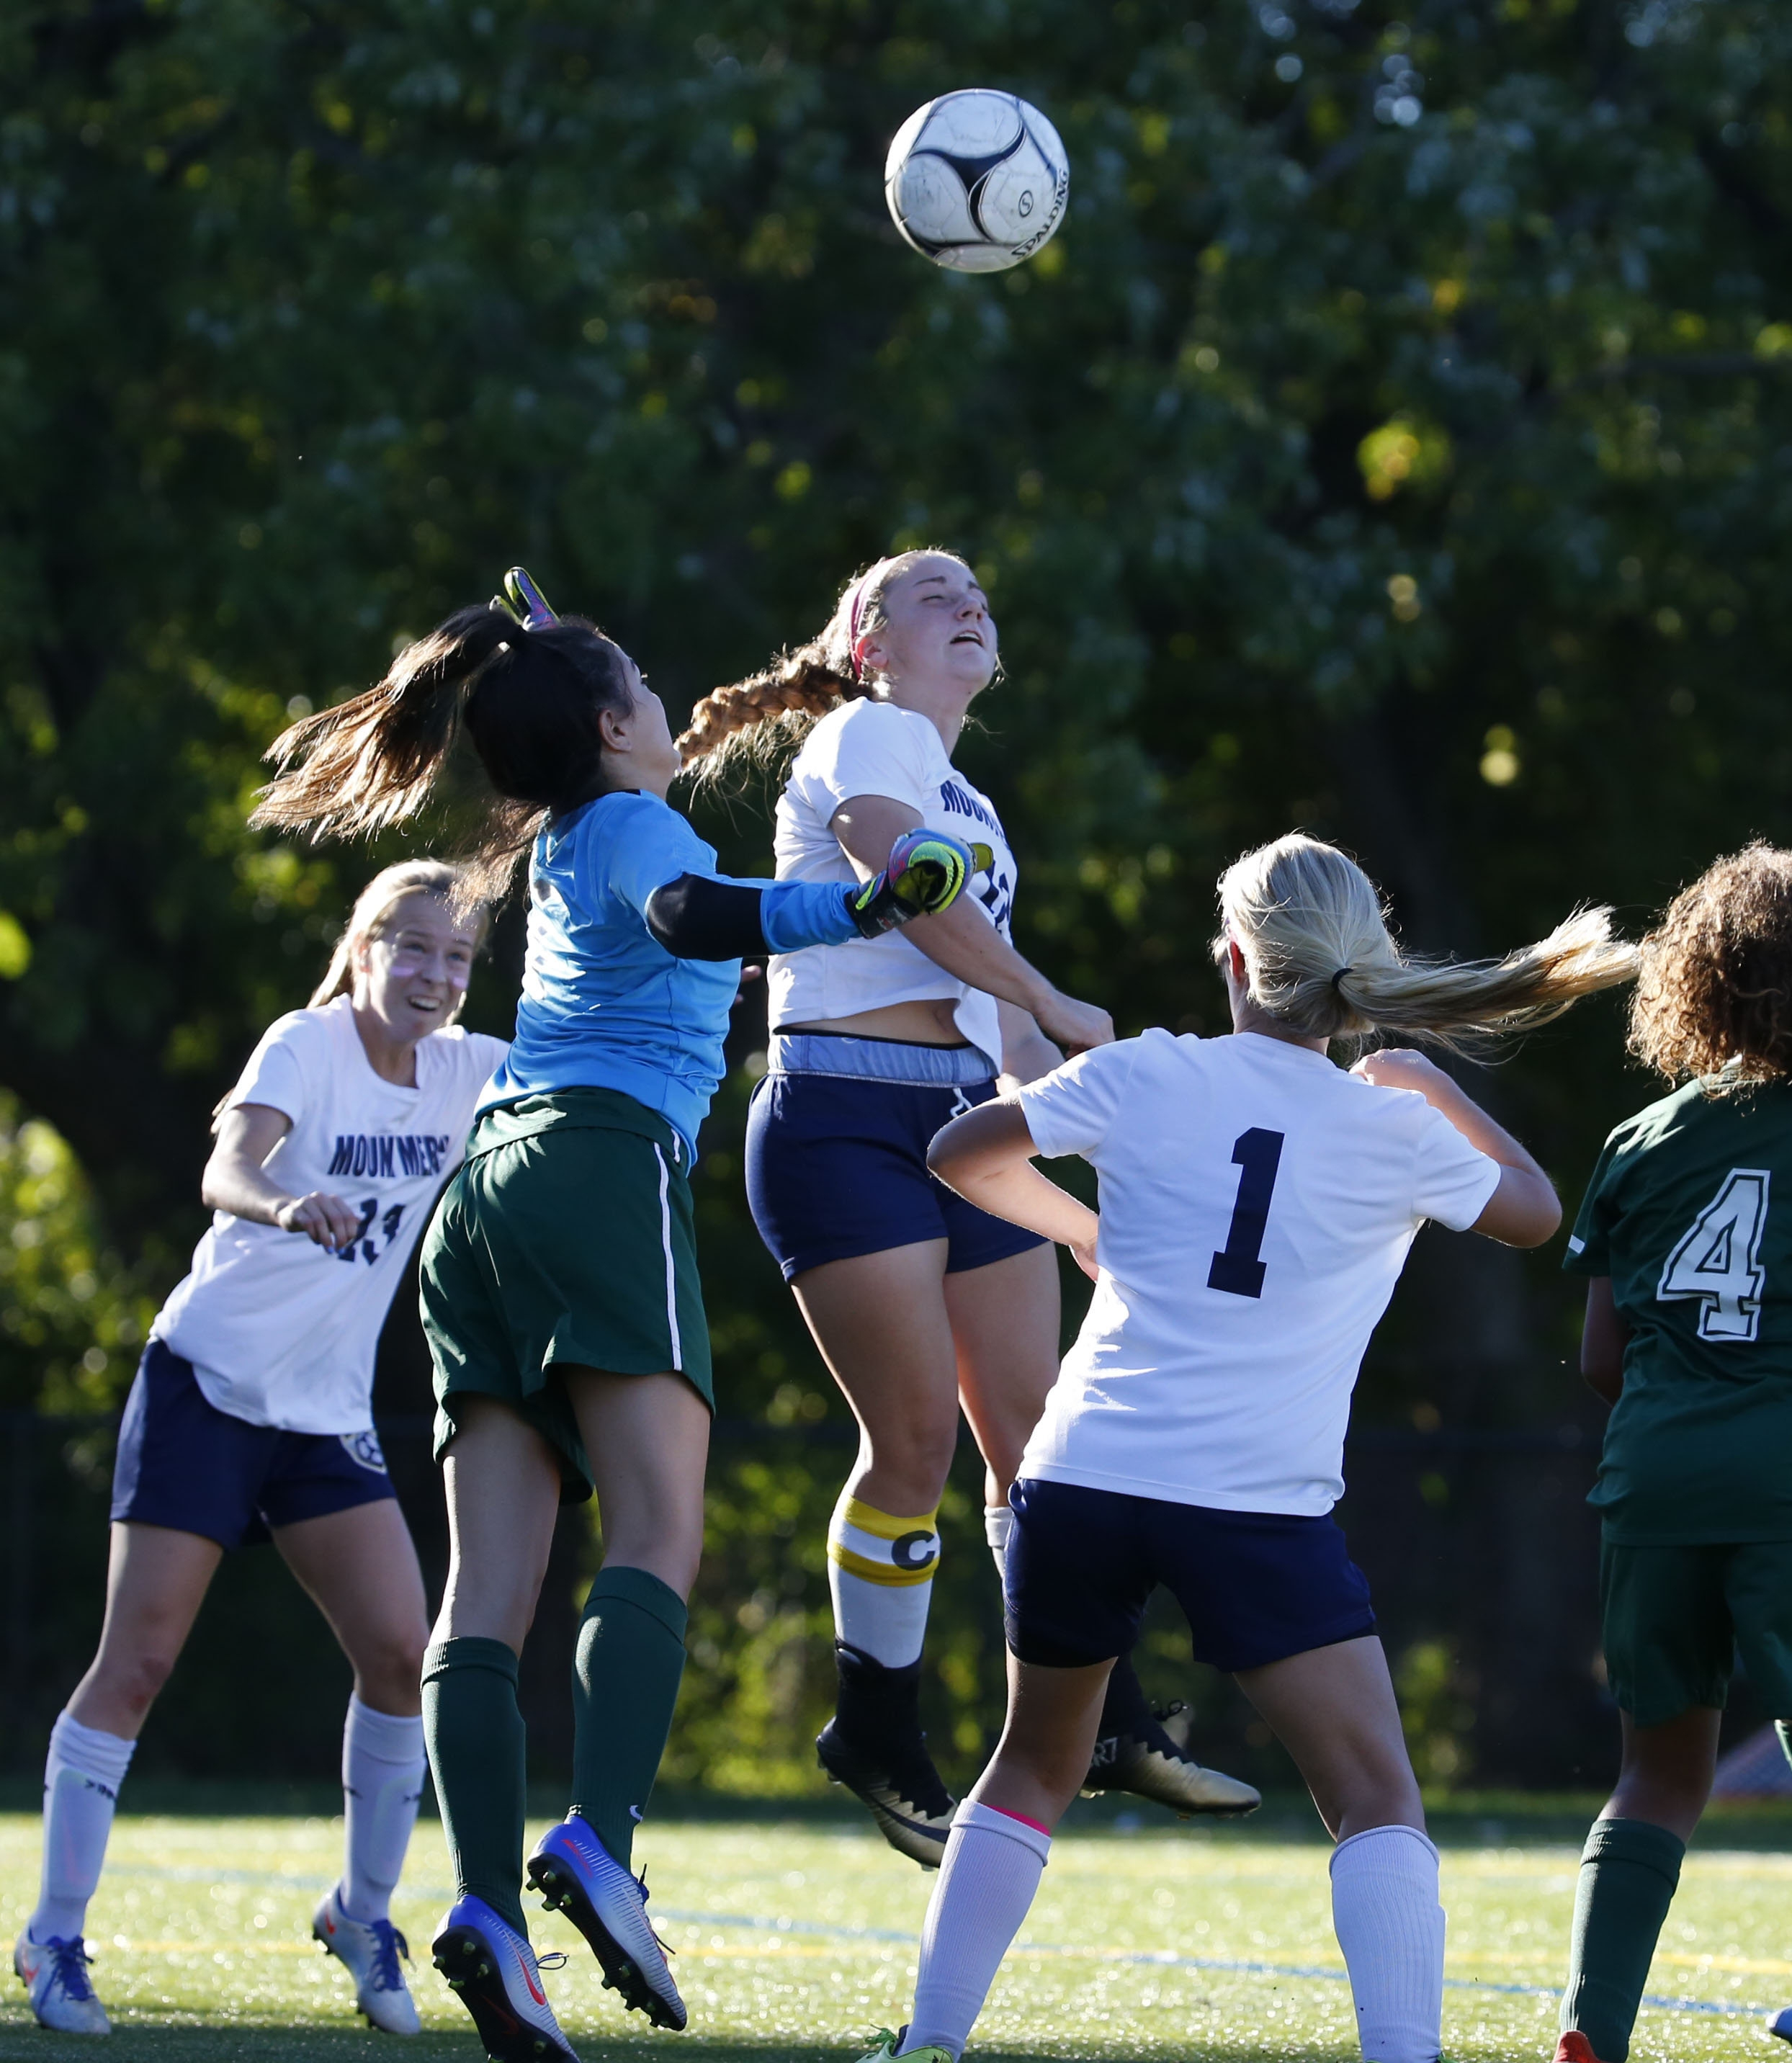 Mount Mercy's Alyssa Siracuse heads a ball toward the Nichols goal during first half action Friday at Mulroy Park.